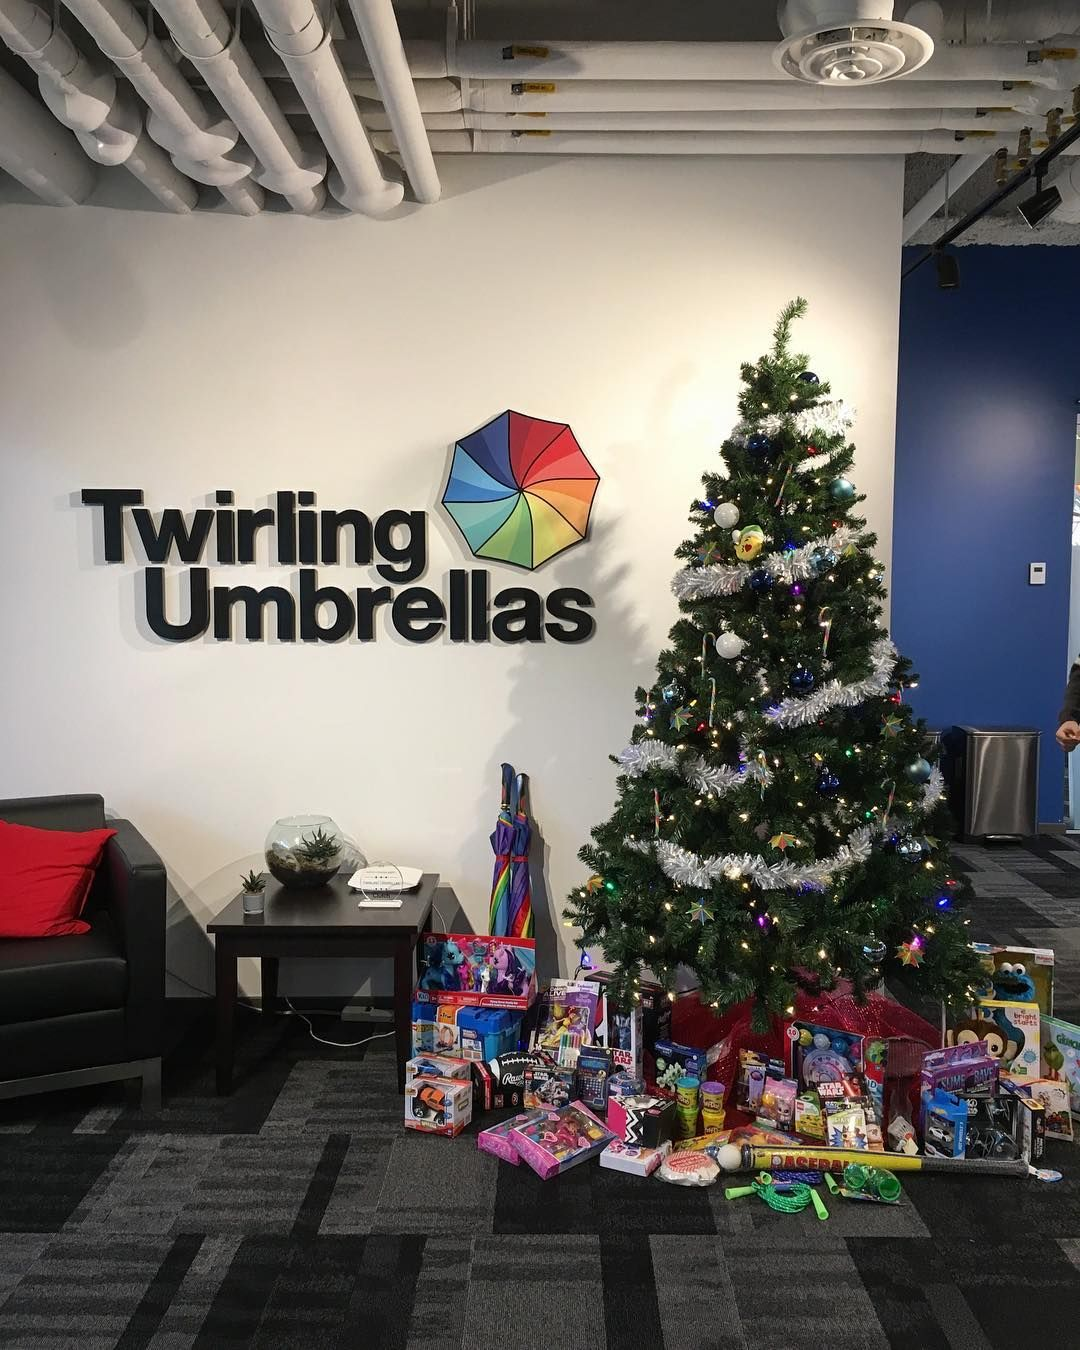 Isn't our tree looking fantastic?! We're part of such a wonderful community. Don't forget to drop off your unwrapped toy by the end of the day tomorrow to make the holidays brighter for a kid in need. #toydrive #salvationarmykelowna #innovationcentre